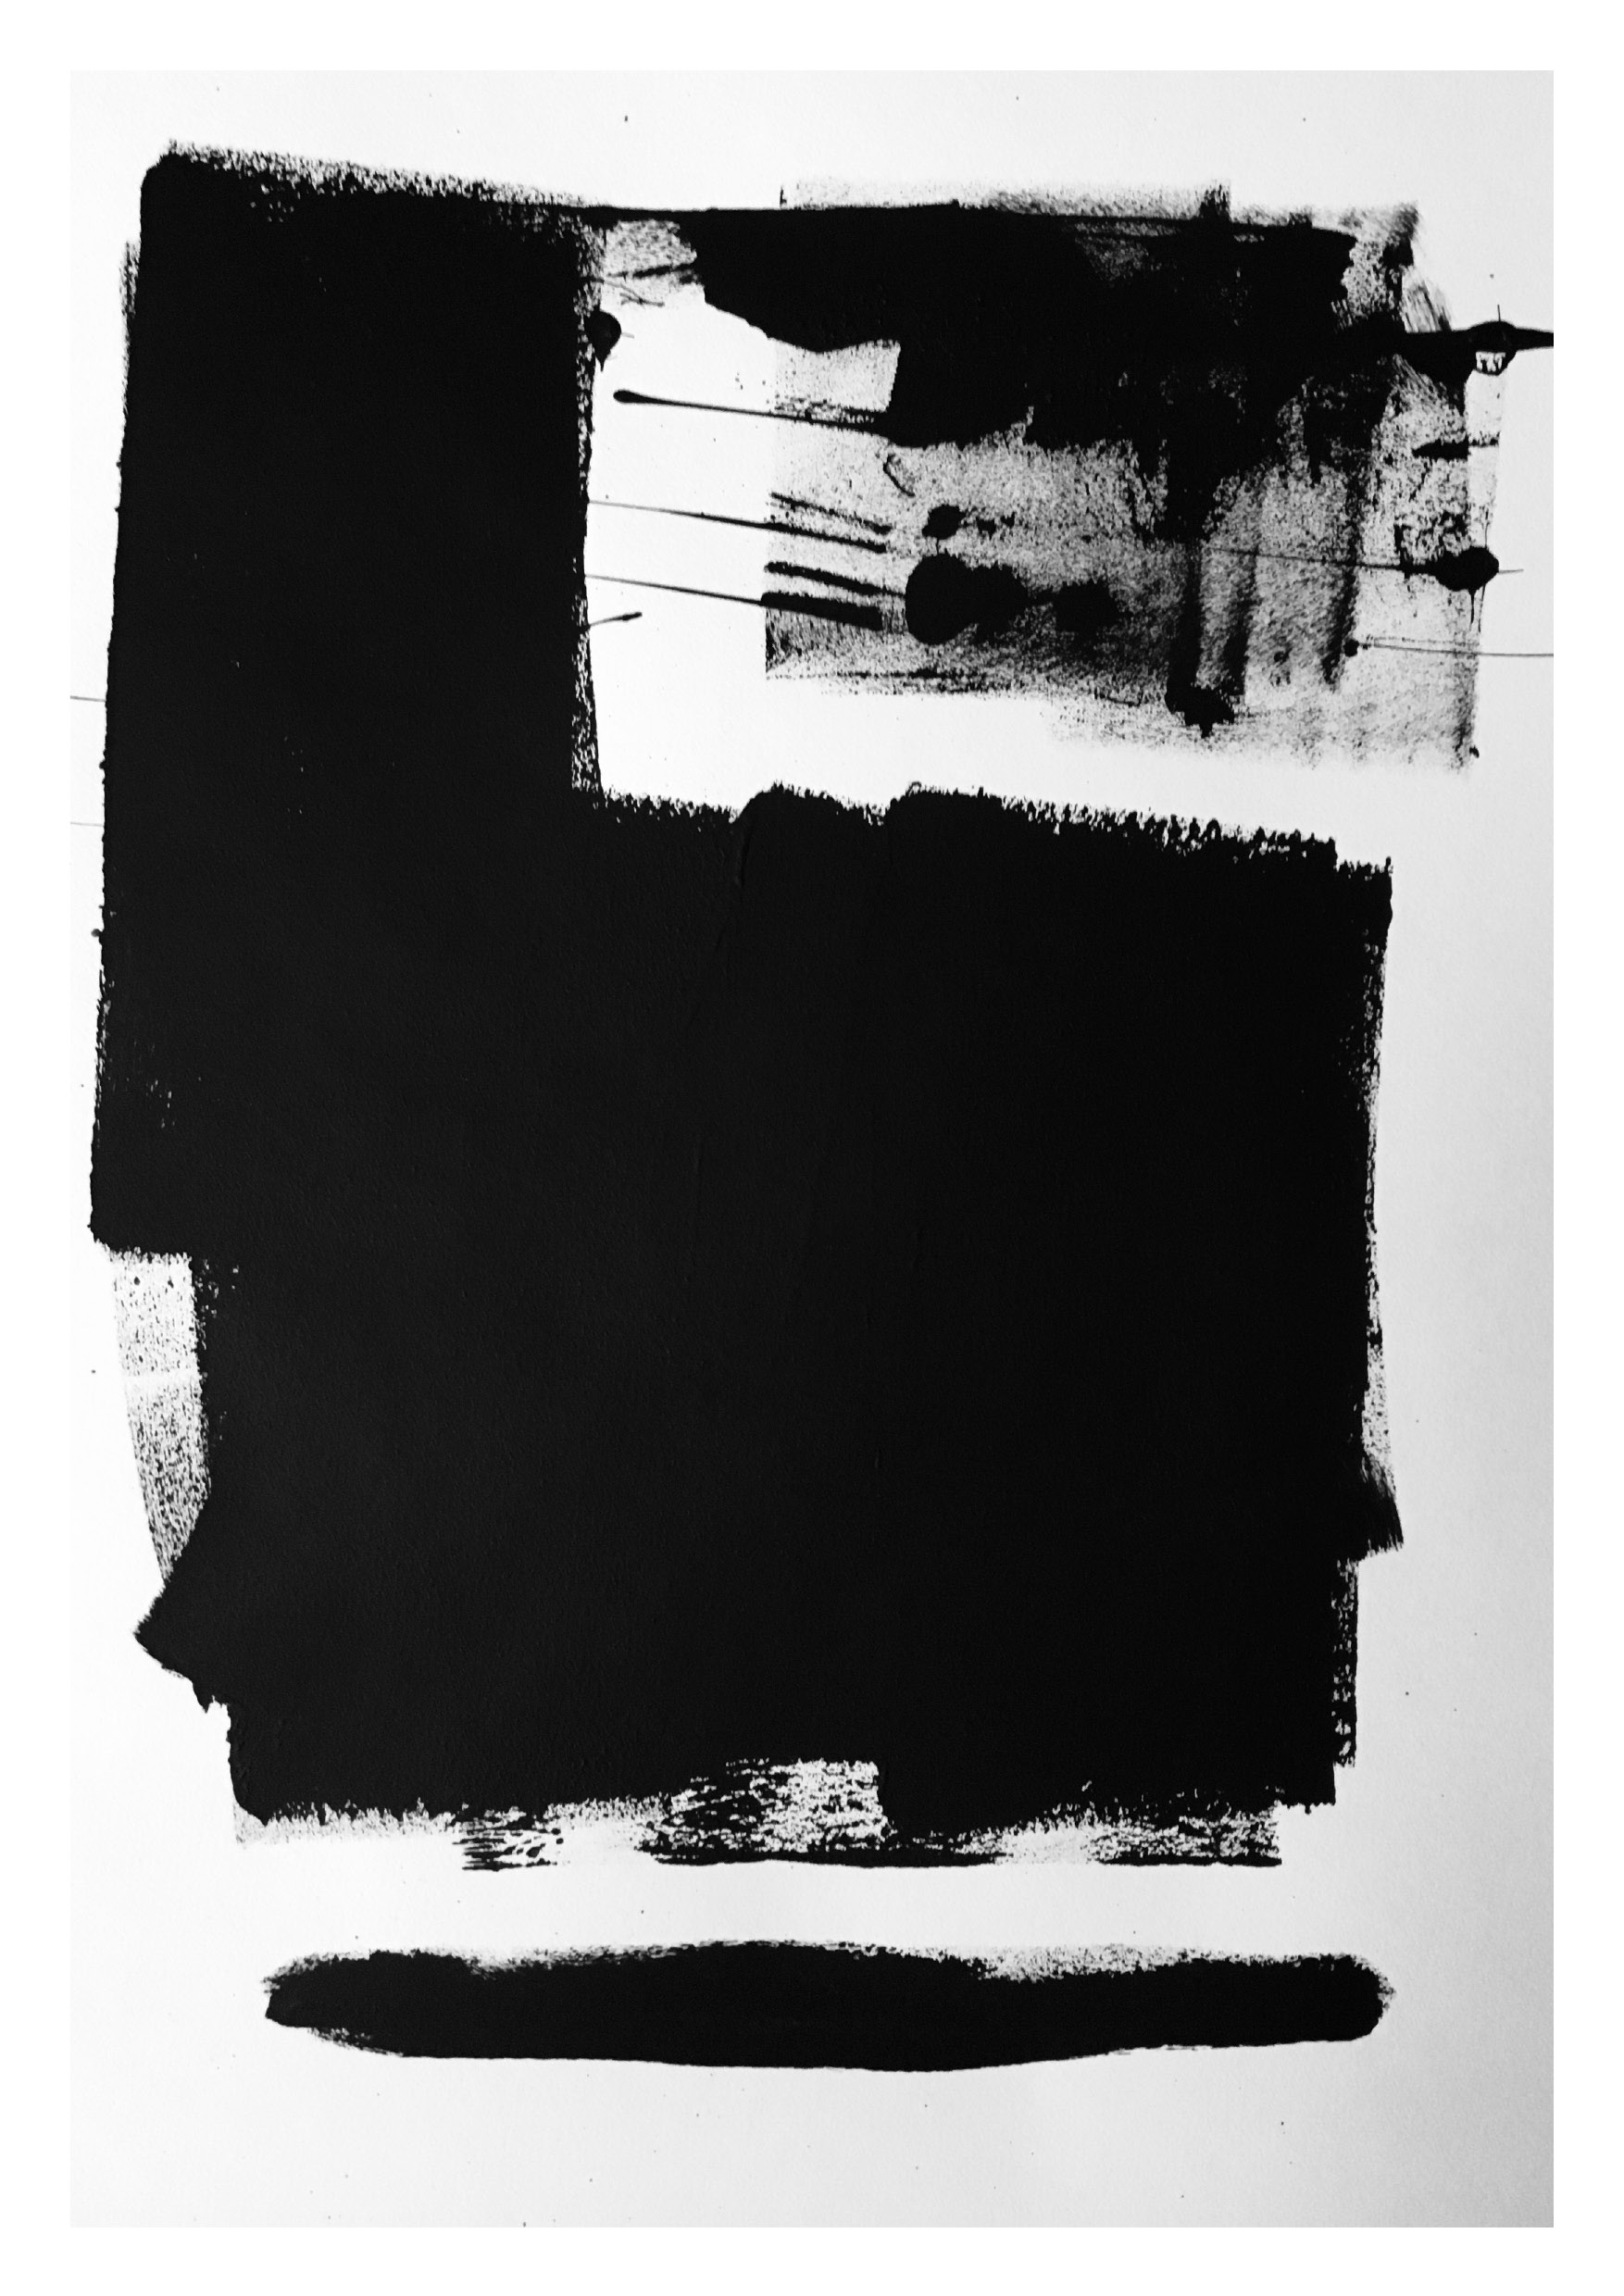 Untitled 1 – Black Acrylic on Paper